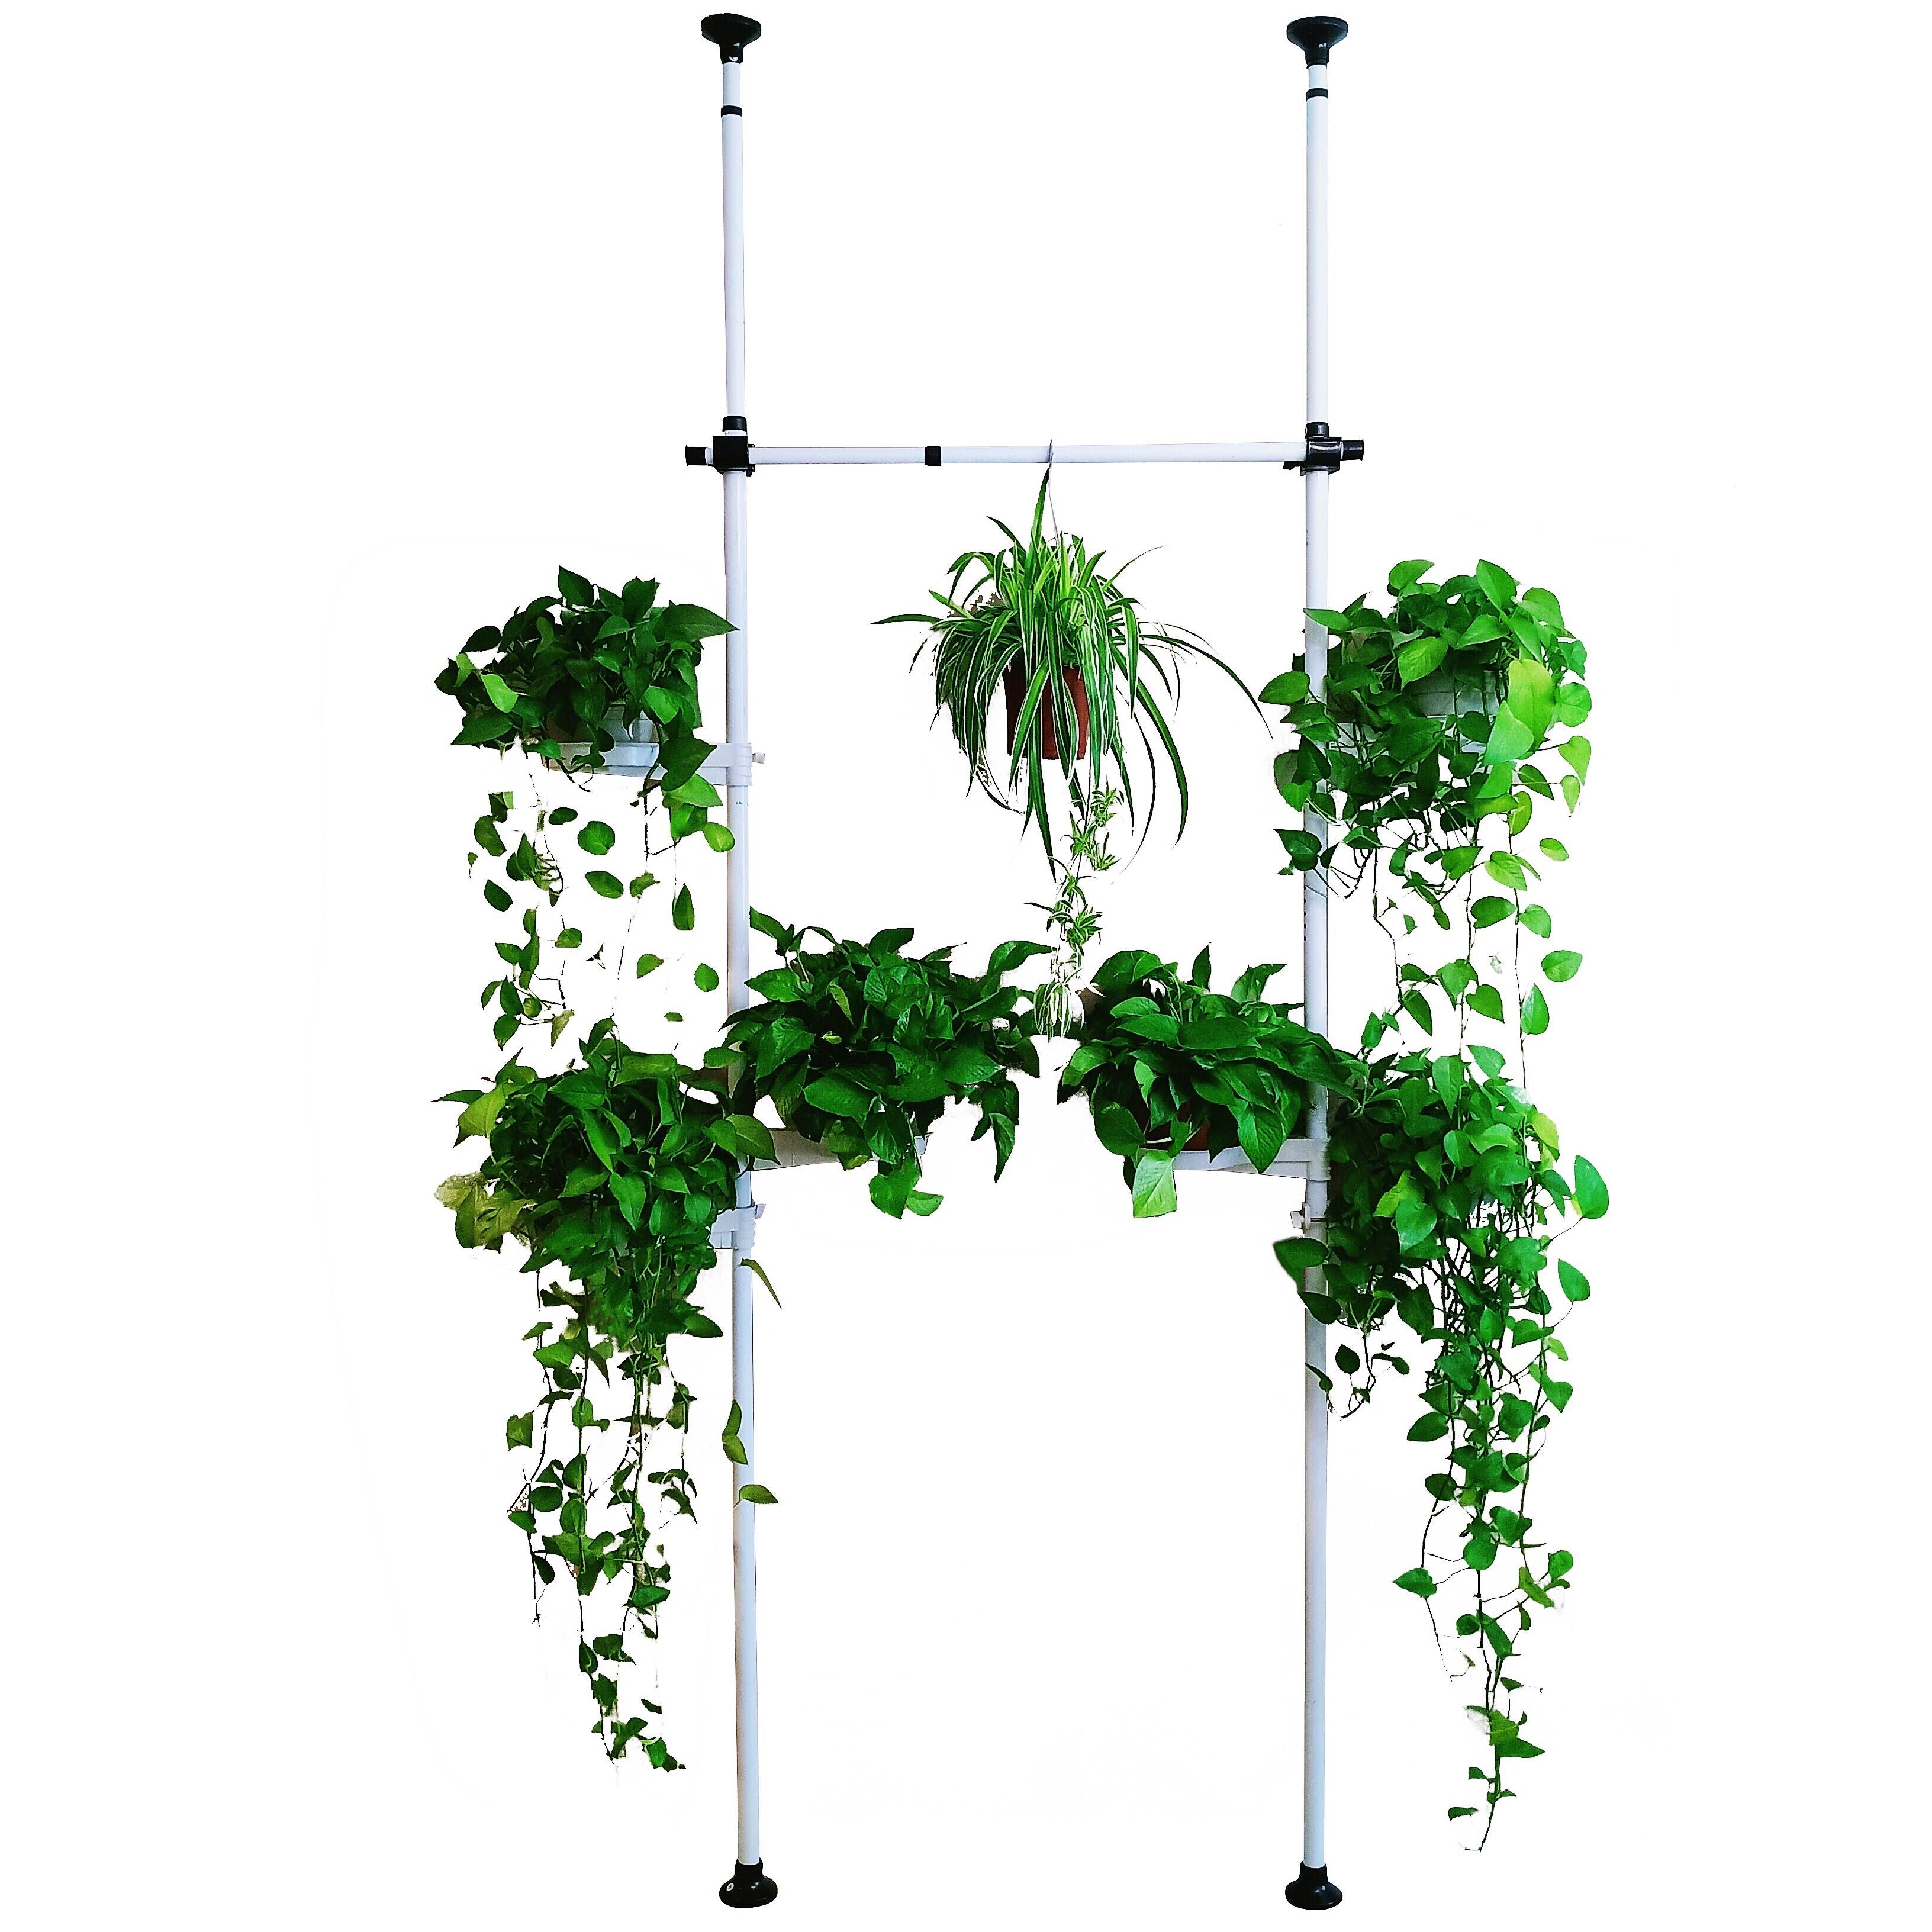 Assemble Vertical Pole Three-dimensional Flower Rack Multi-storey Green Radish Meat Telescopic Rod Flowerpot Frame Adjustable